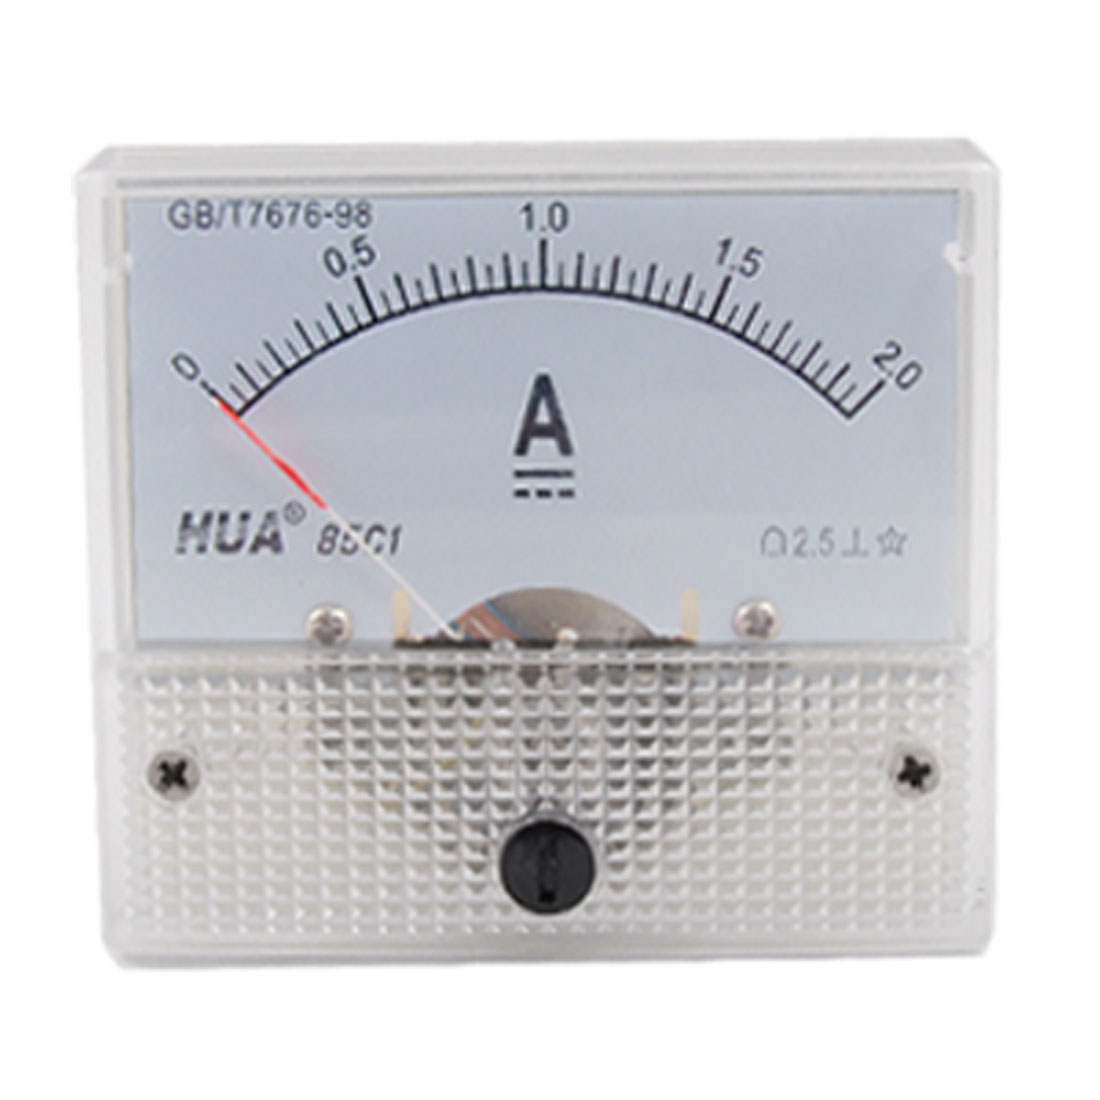 DC 0-2A Analog Current Panel Meter Ampere Ammeter 85C1